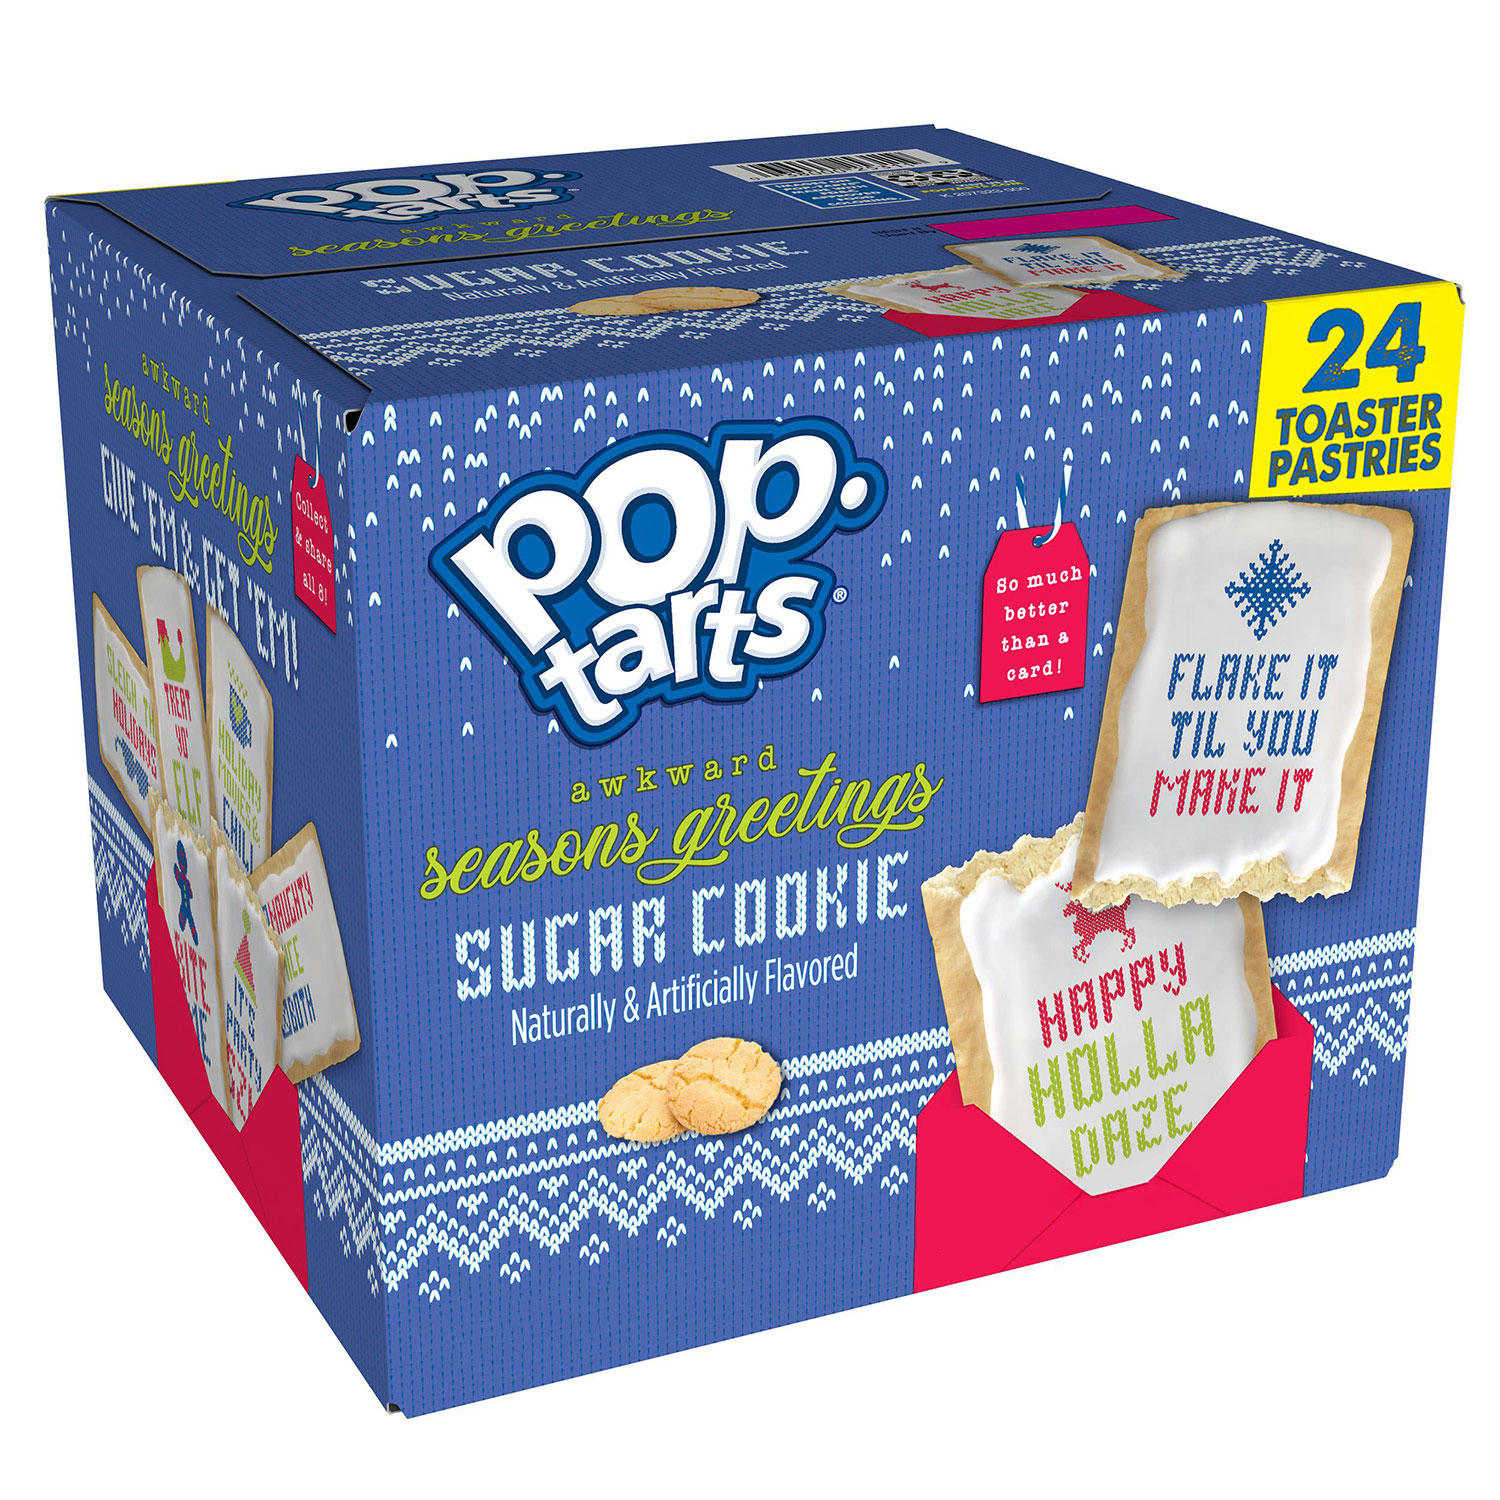 24-Count Kellogg's Pop-Tarts Limited Edition Sugar Cookie